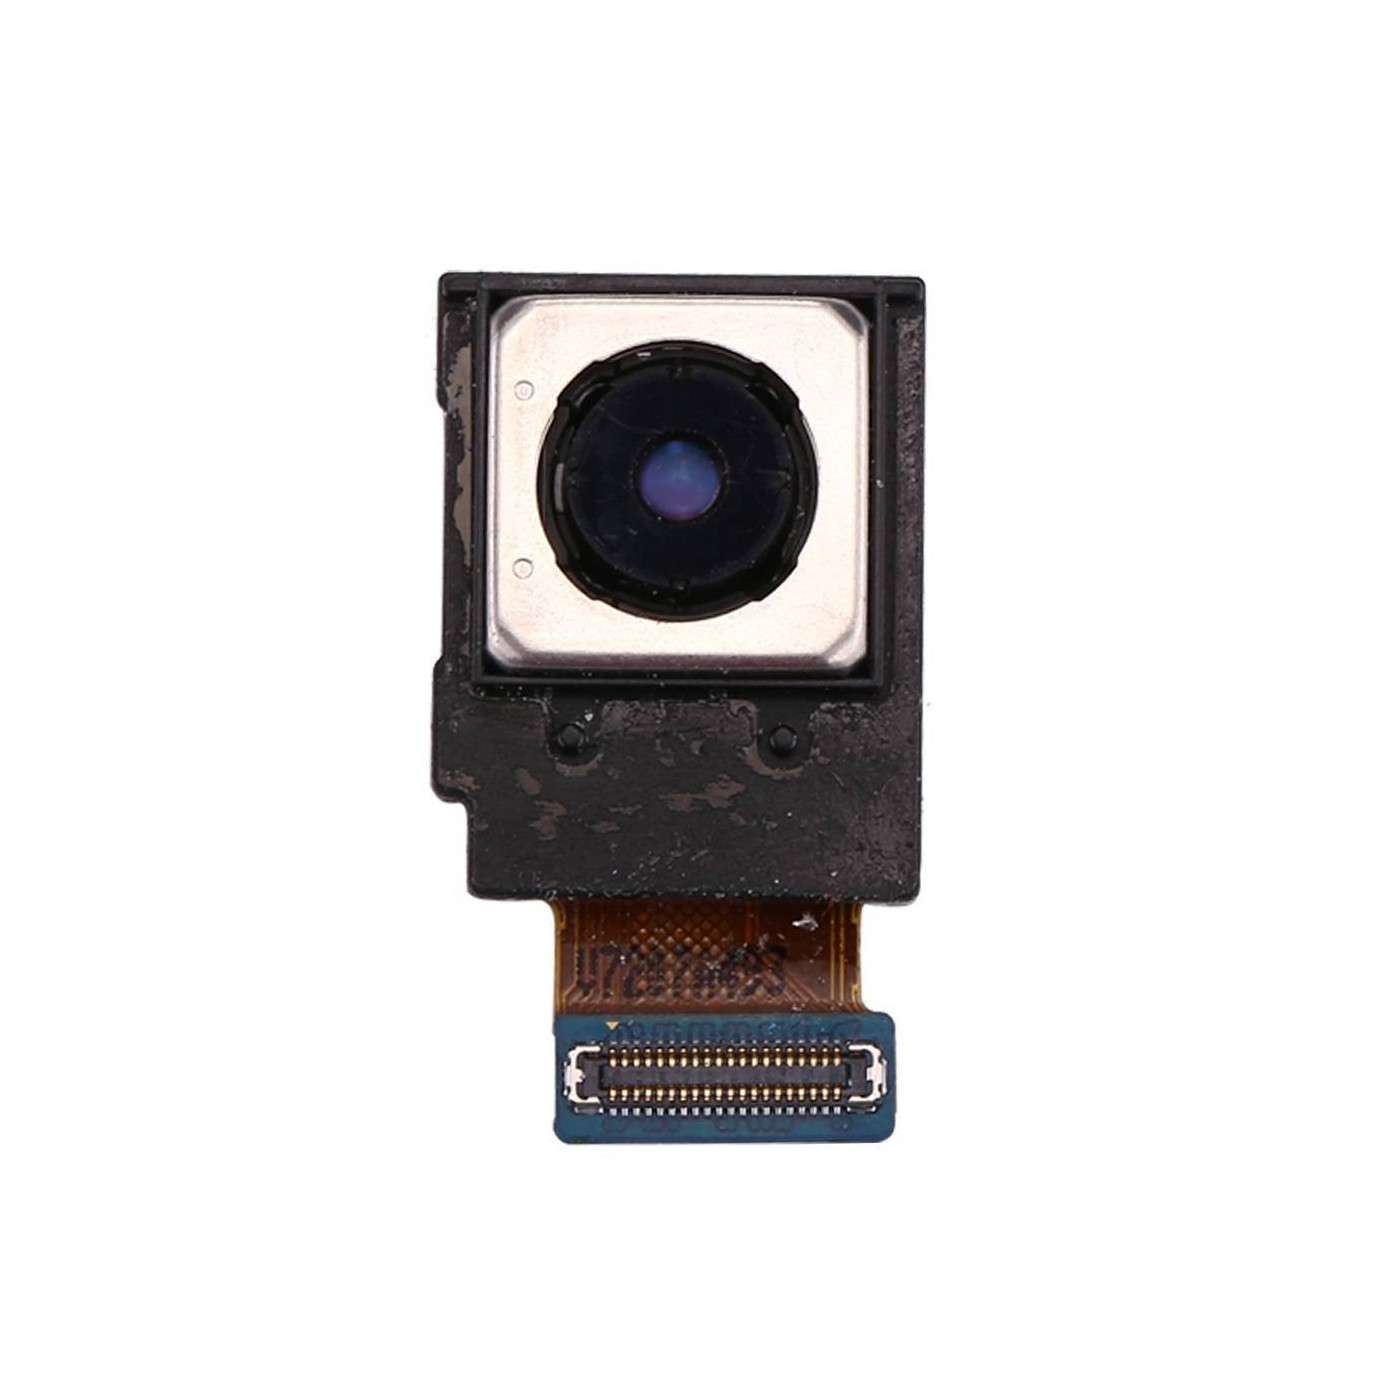 Replacement rear camera for Galaxy Room S8 G950F